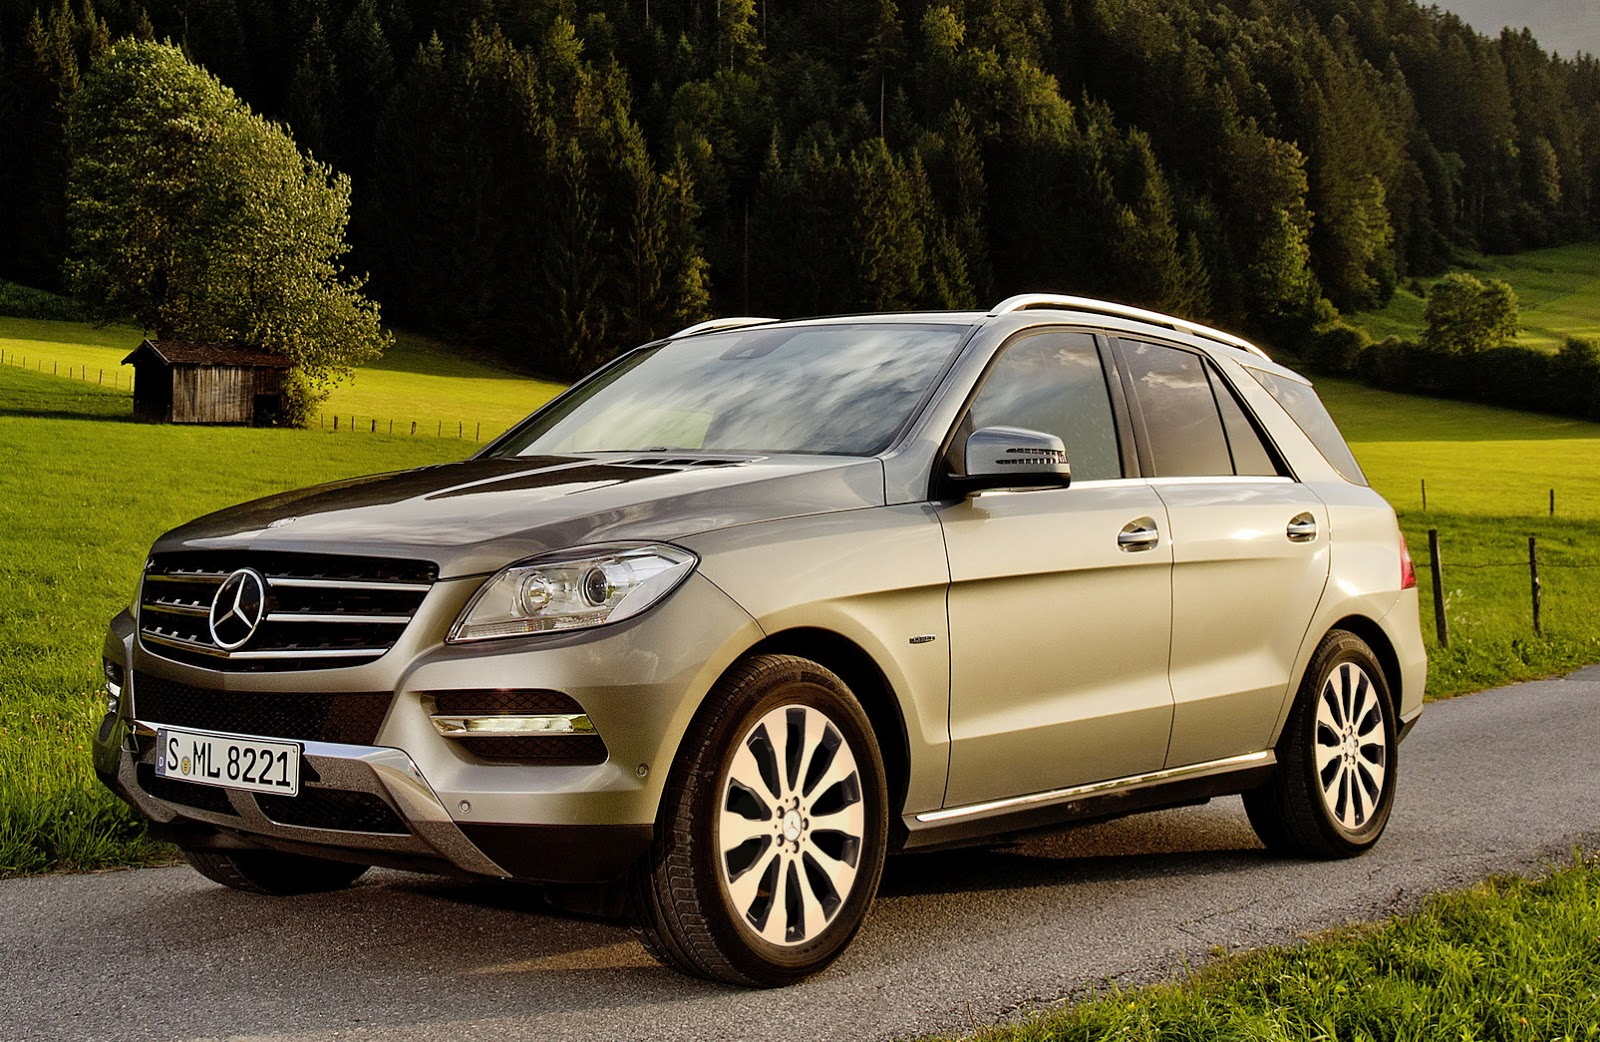 mercedes rolls out new alloy wheels for summer 2015 carscoops. Black Bedroom Furniture Sets. Home Design Ideas